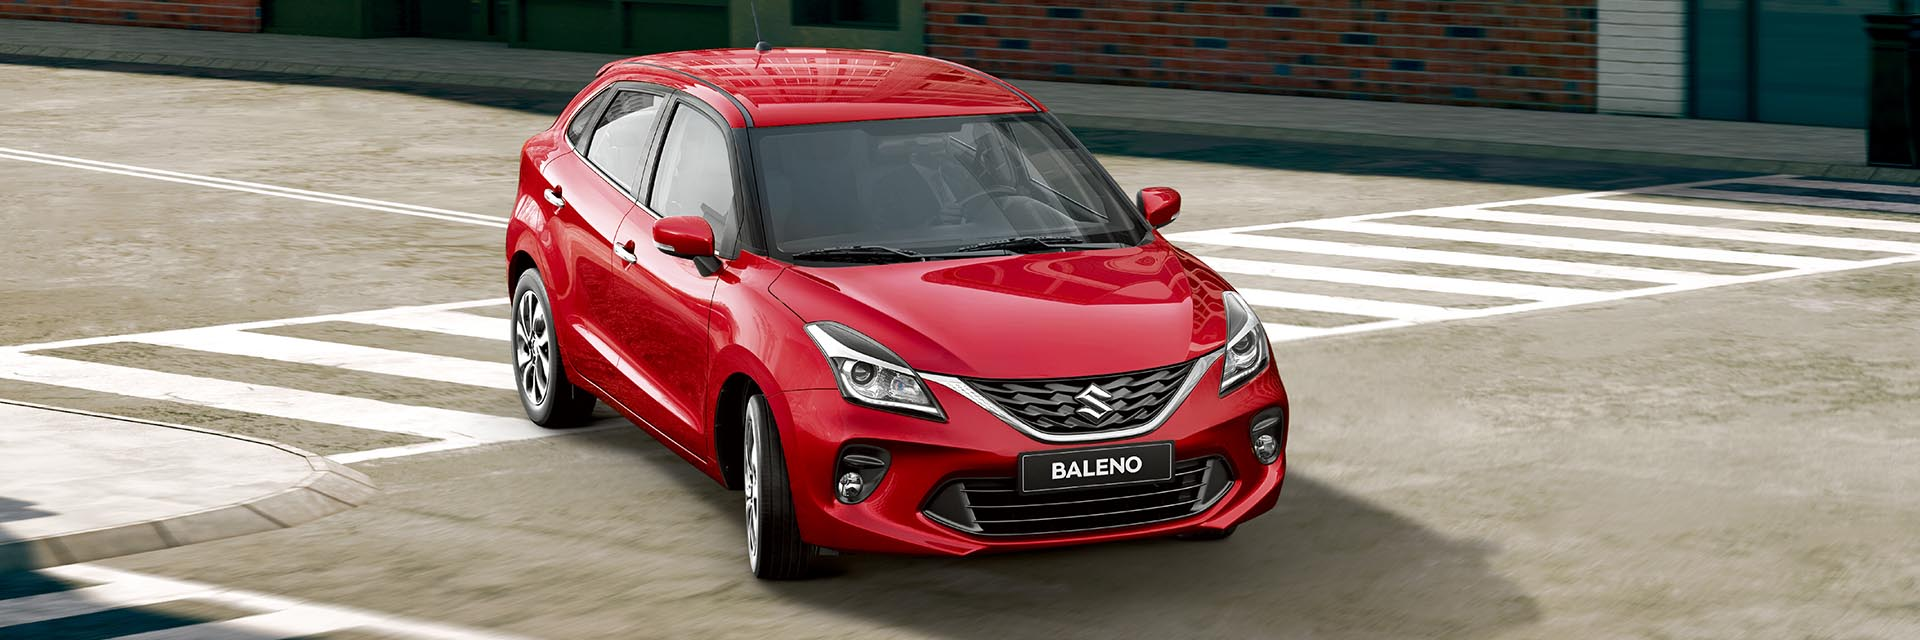 Baleno Overview 3